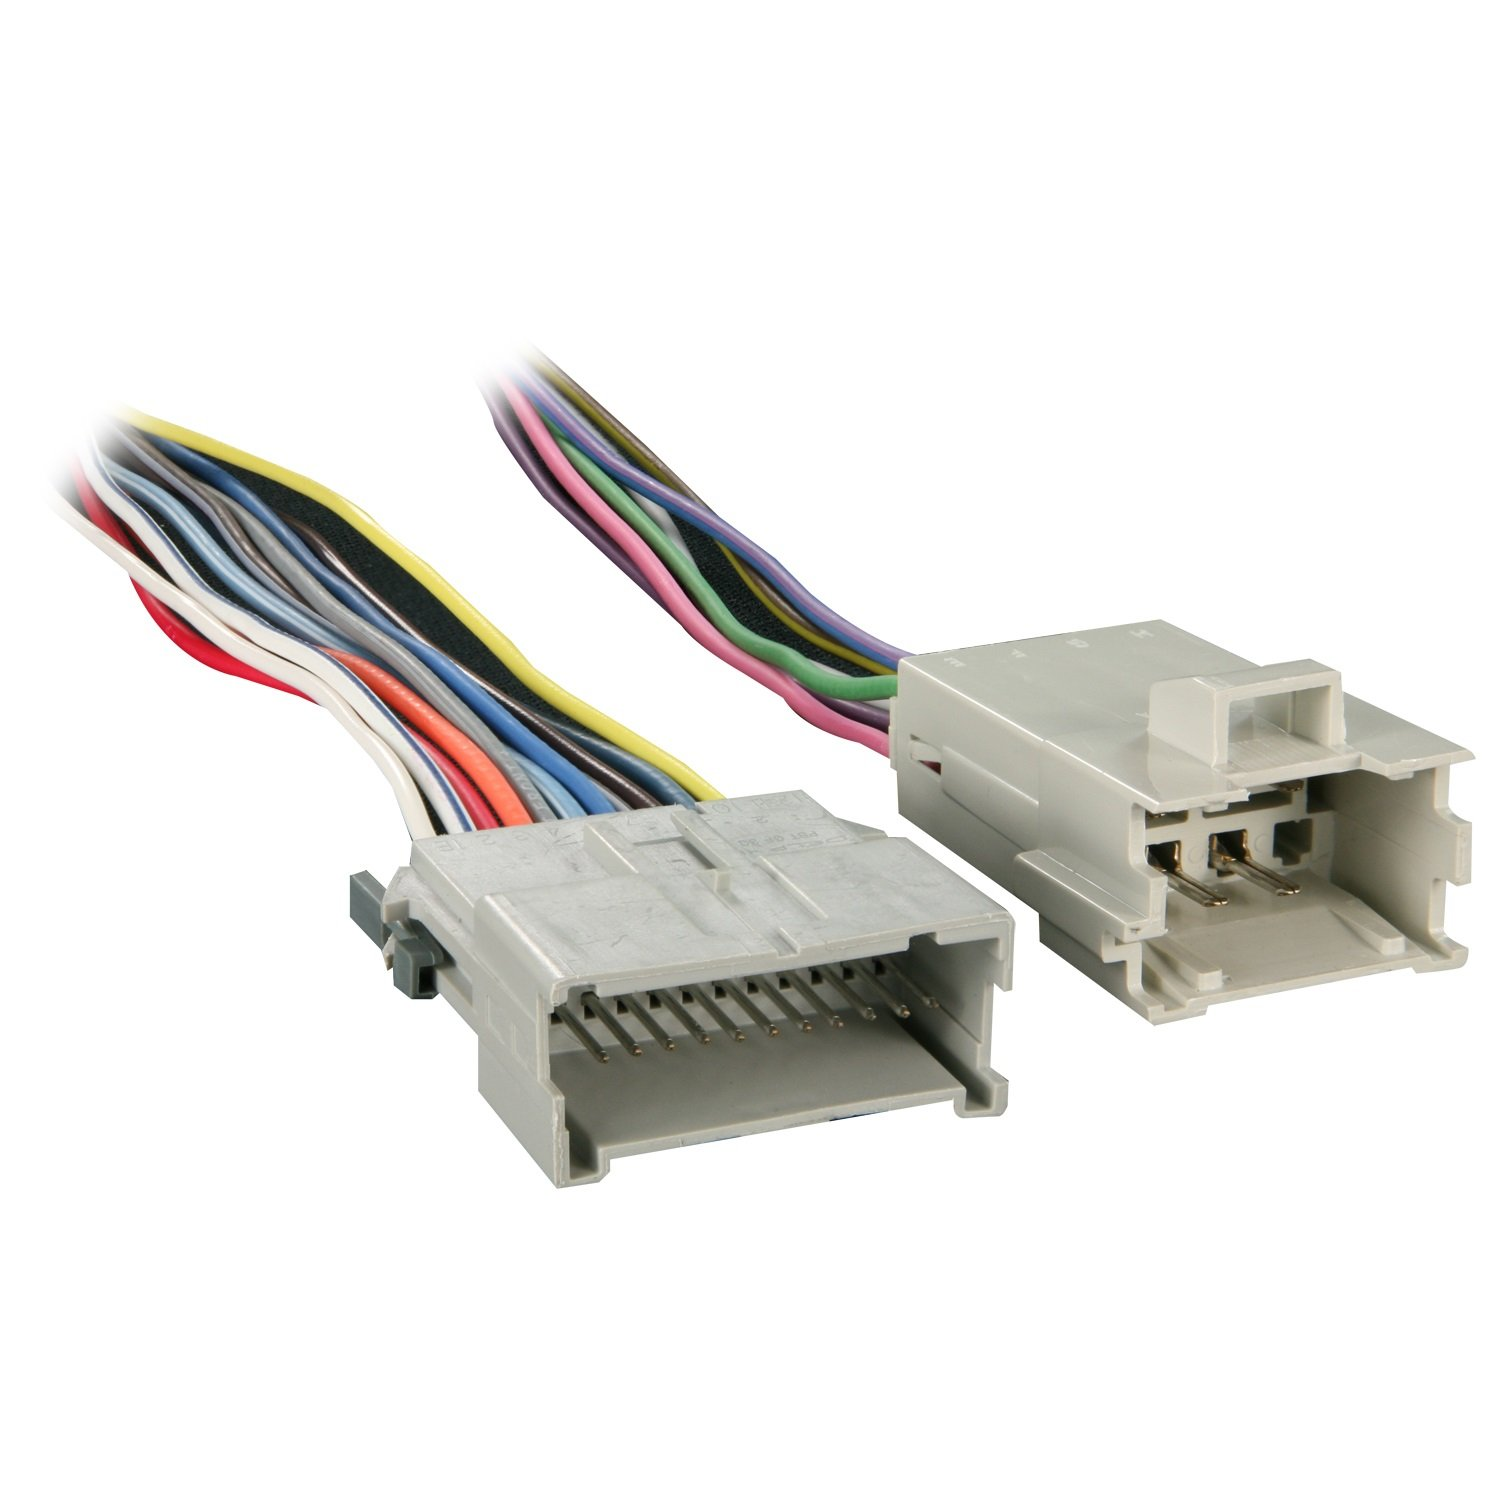 71gEc%2BOPJ8L._SL1500_ amazon com metra 70 2054 factory amplifier bypass harness for GM Wiring Color Codes at bayanpartner.co